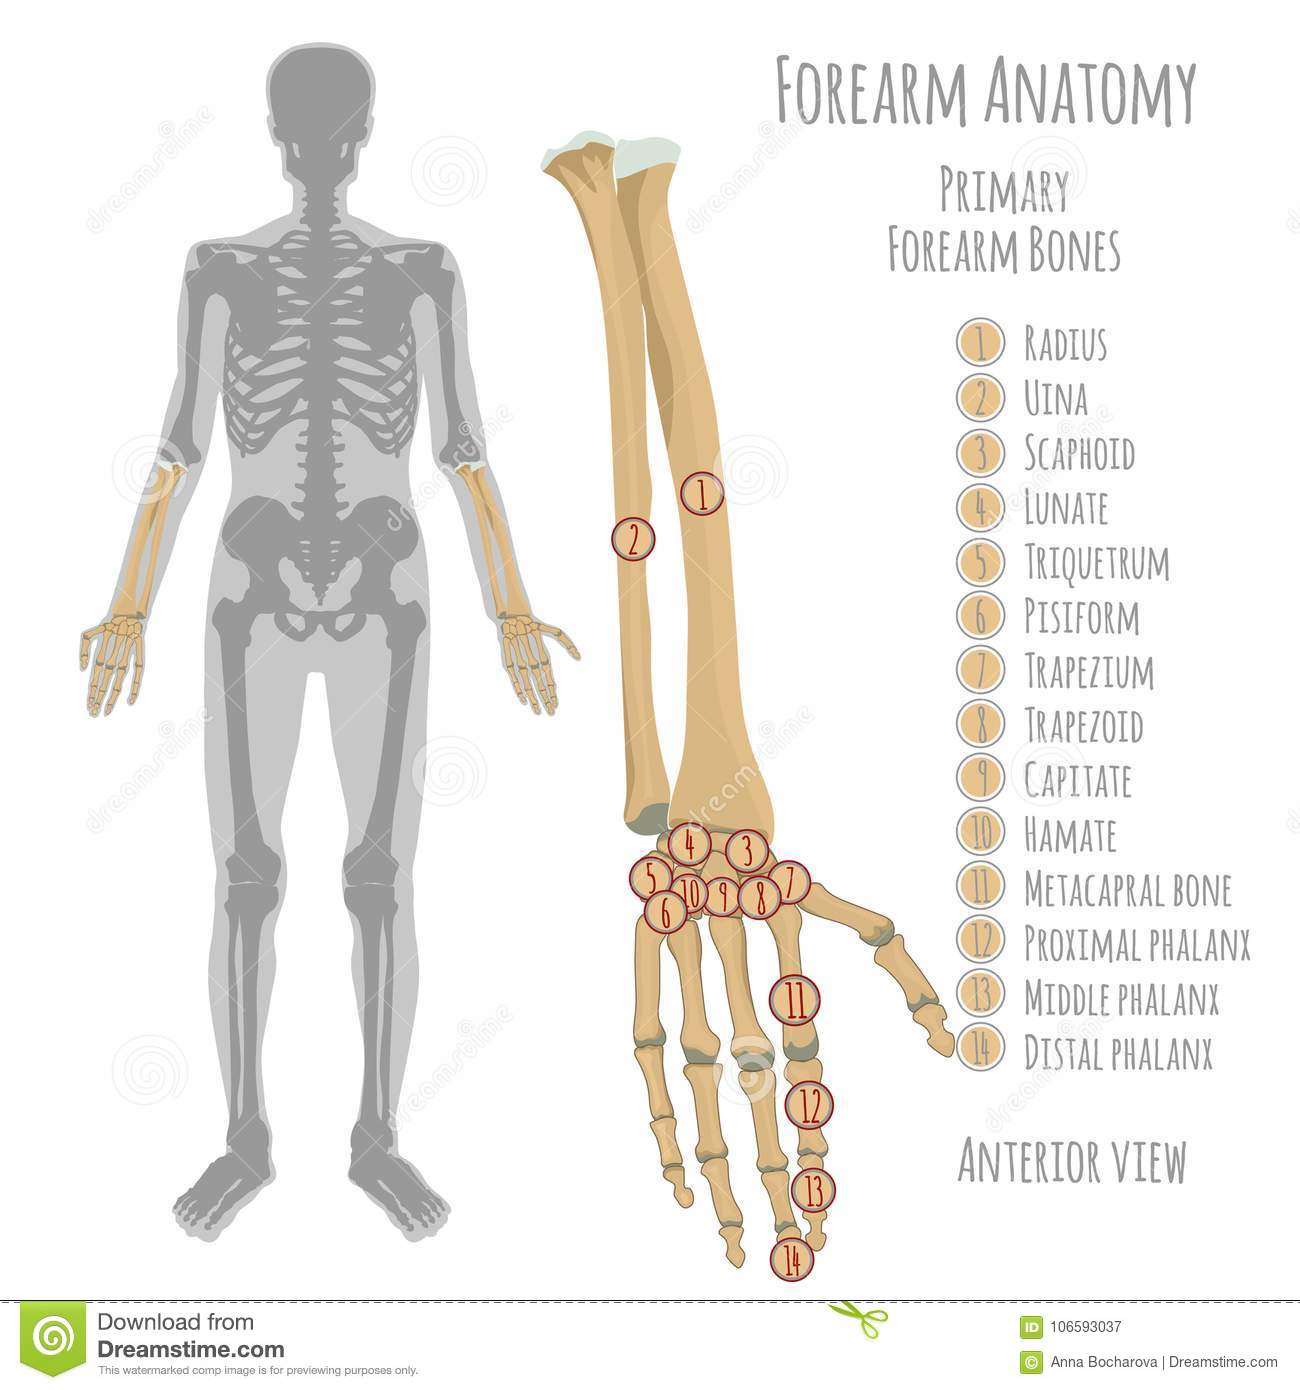 Male forearm bones anatomy stock vector. Illustration of fibula ...